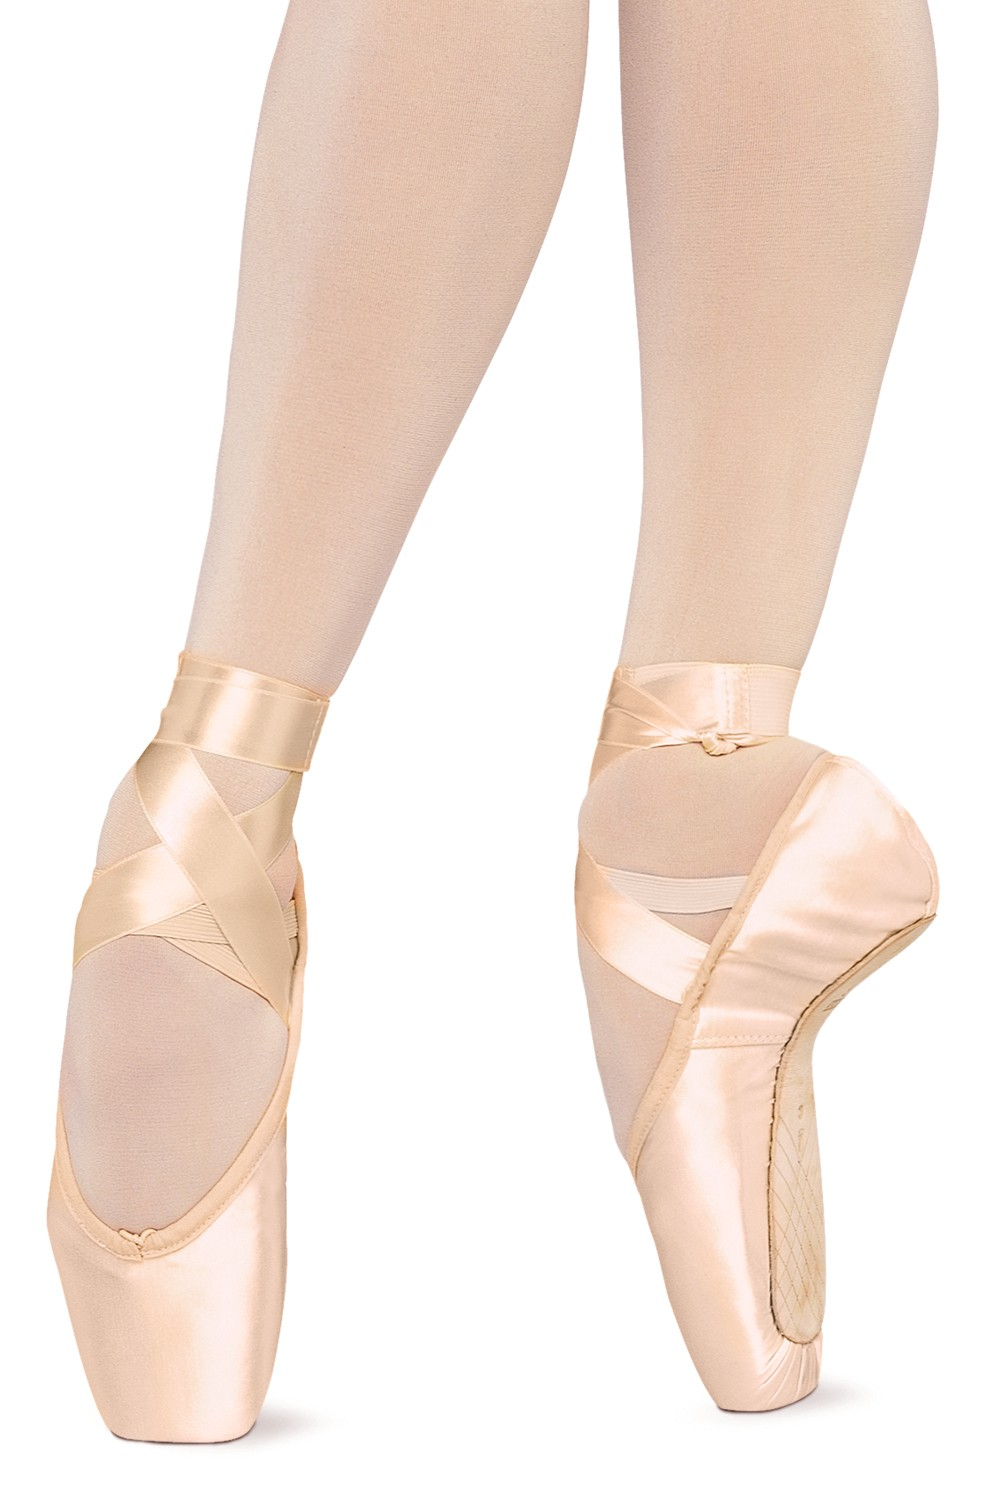 Tmt 31 Serenade Pointe Shoes